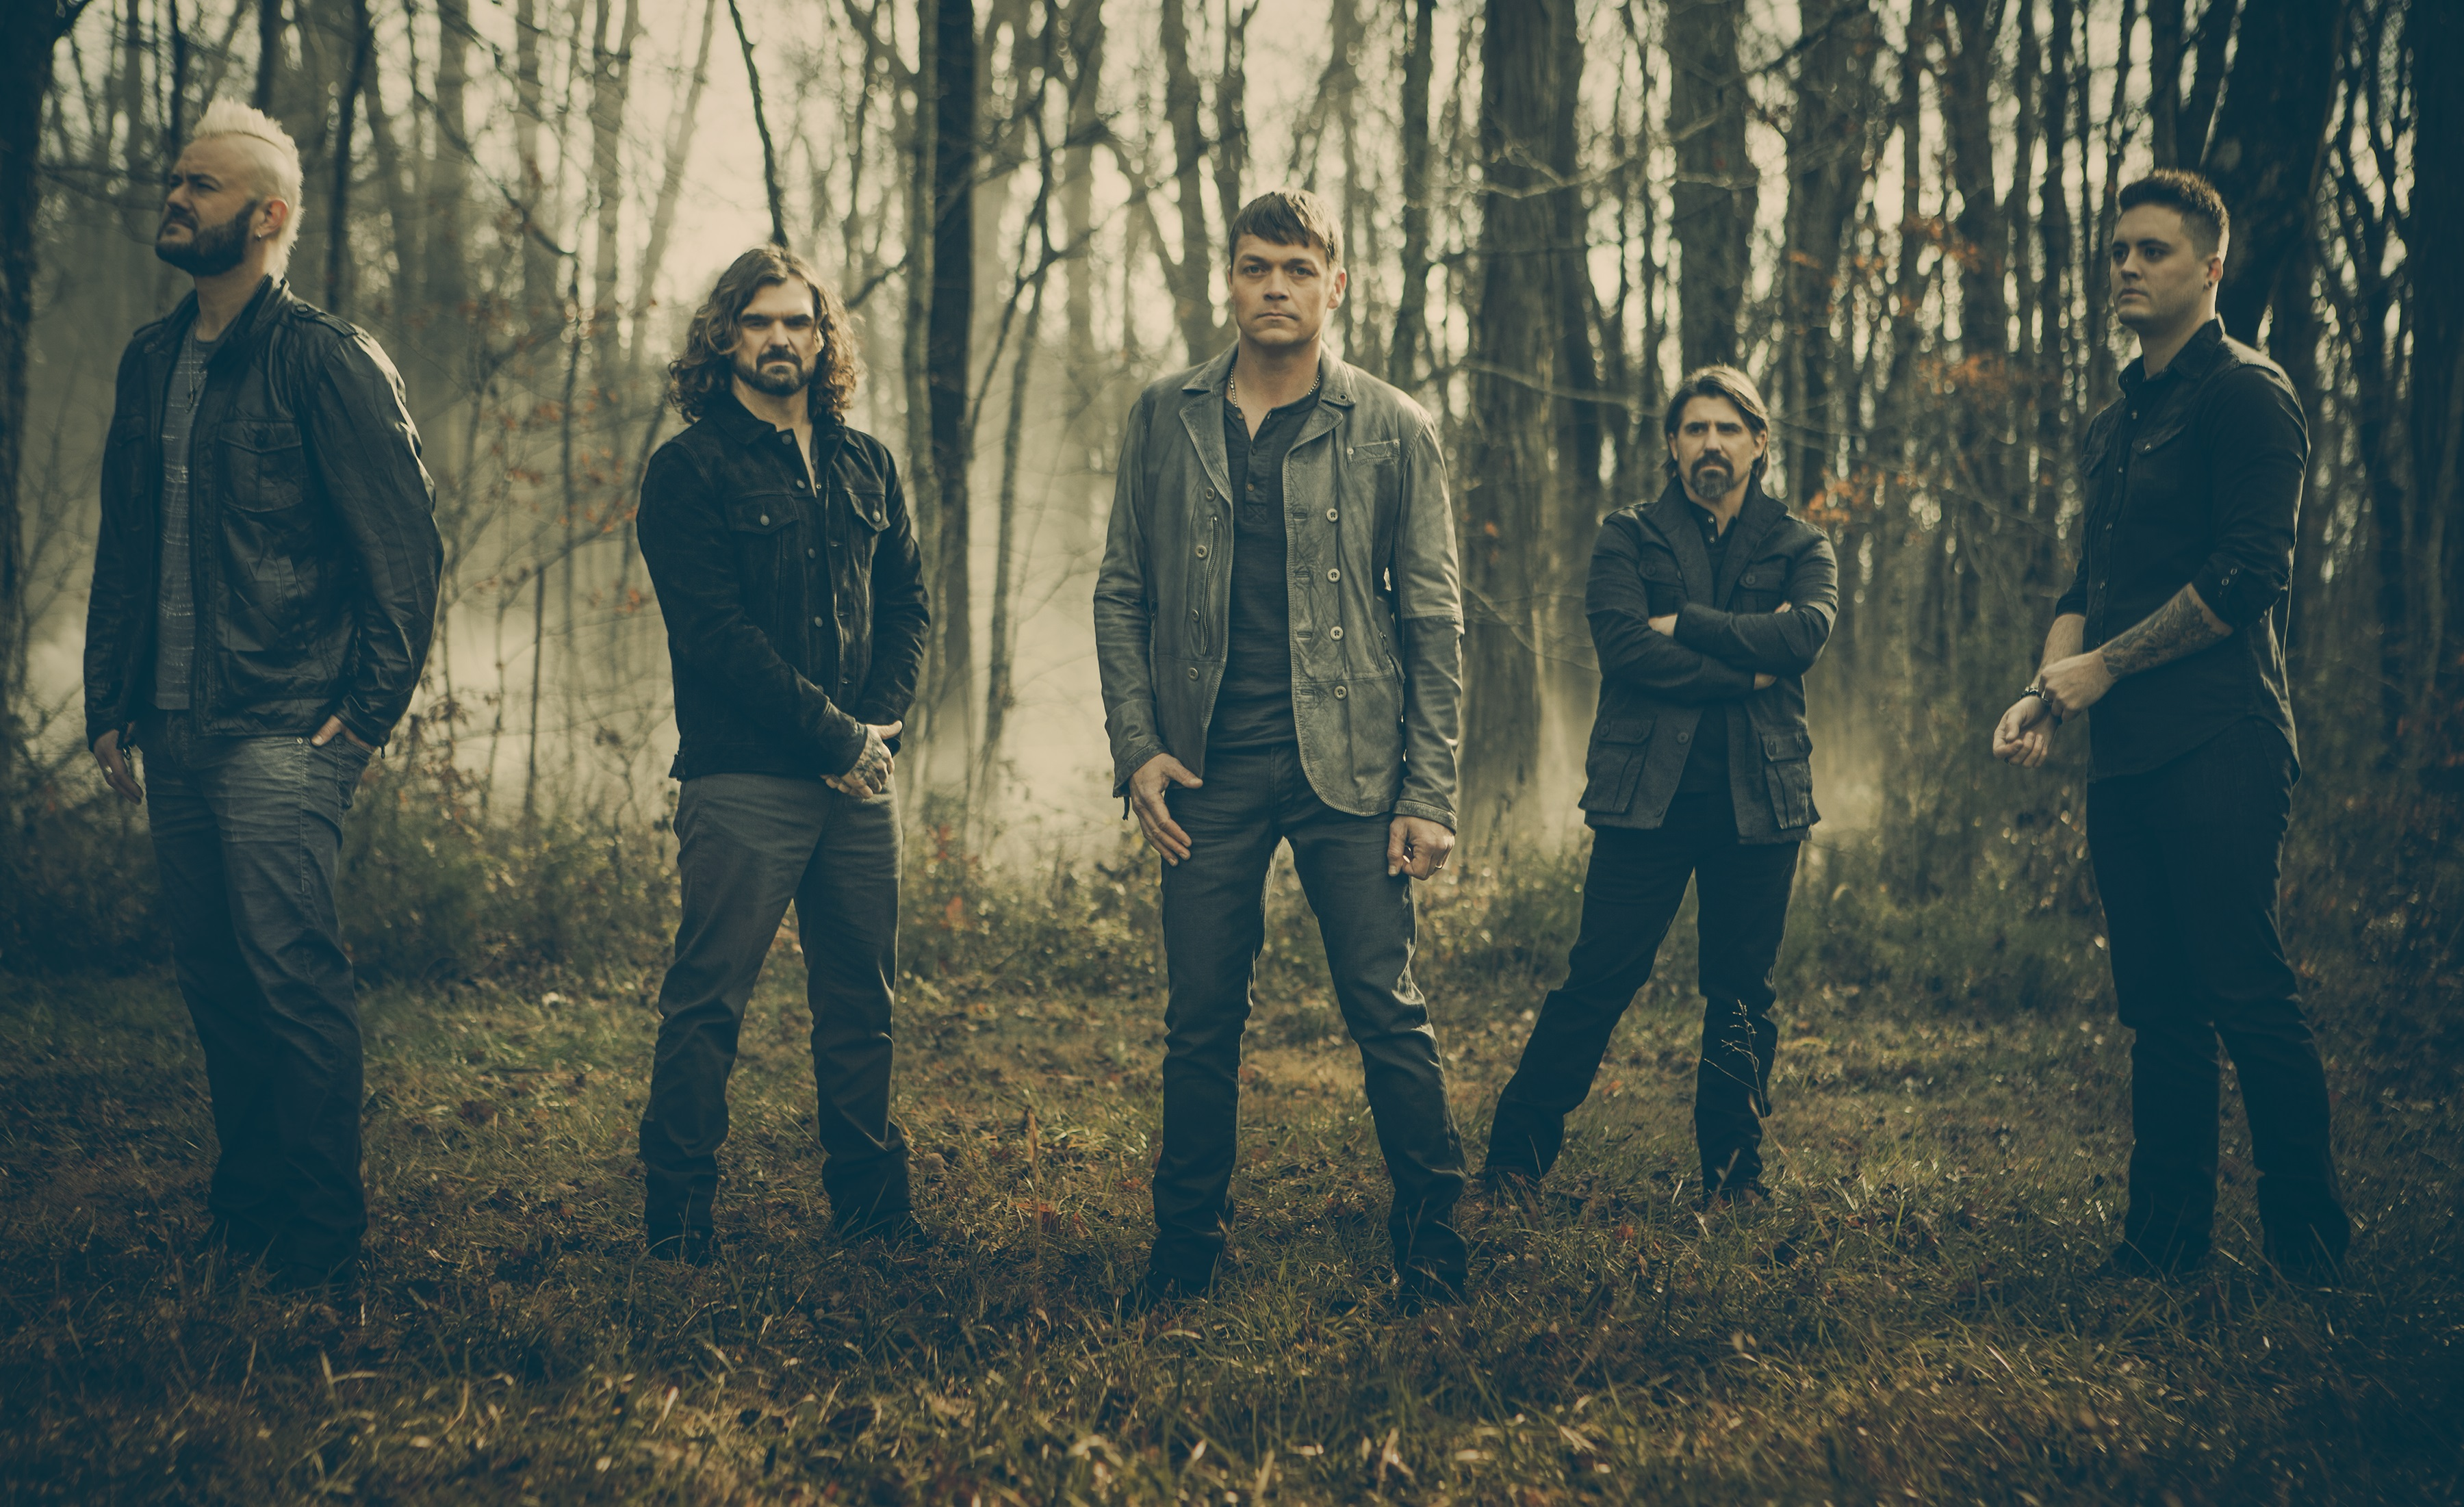 3 DOORS DOWN ANNOUNCE PLANS TO TOUR